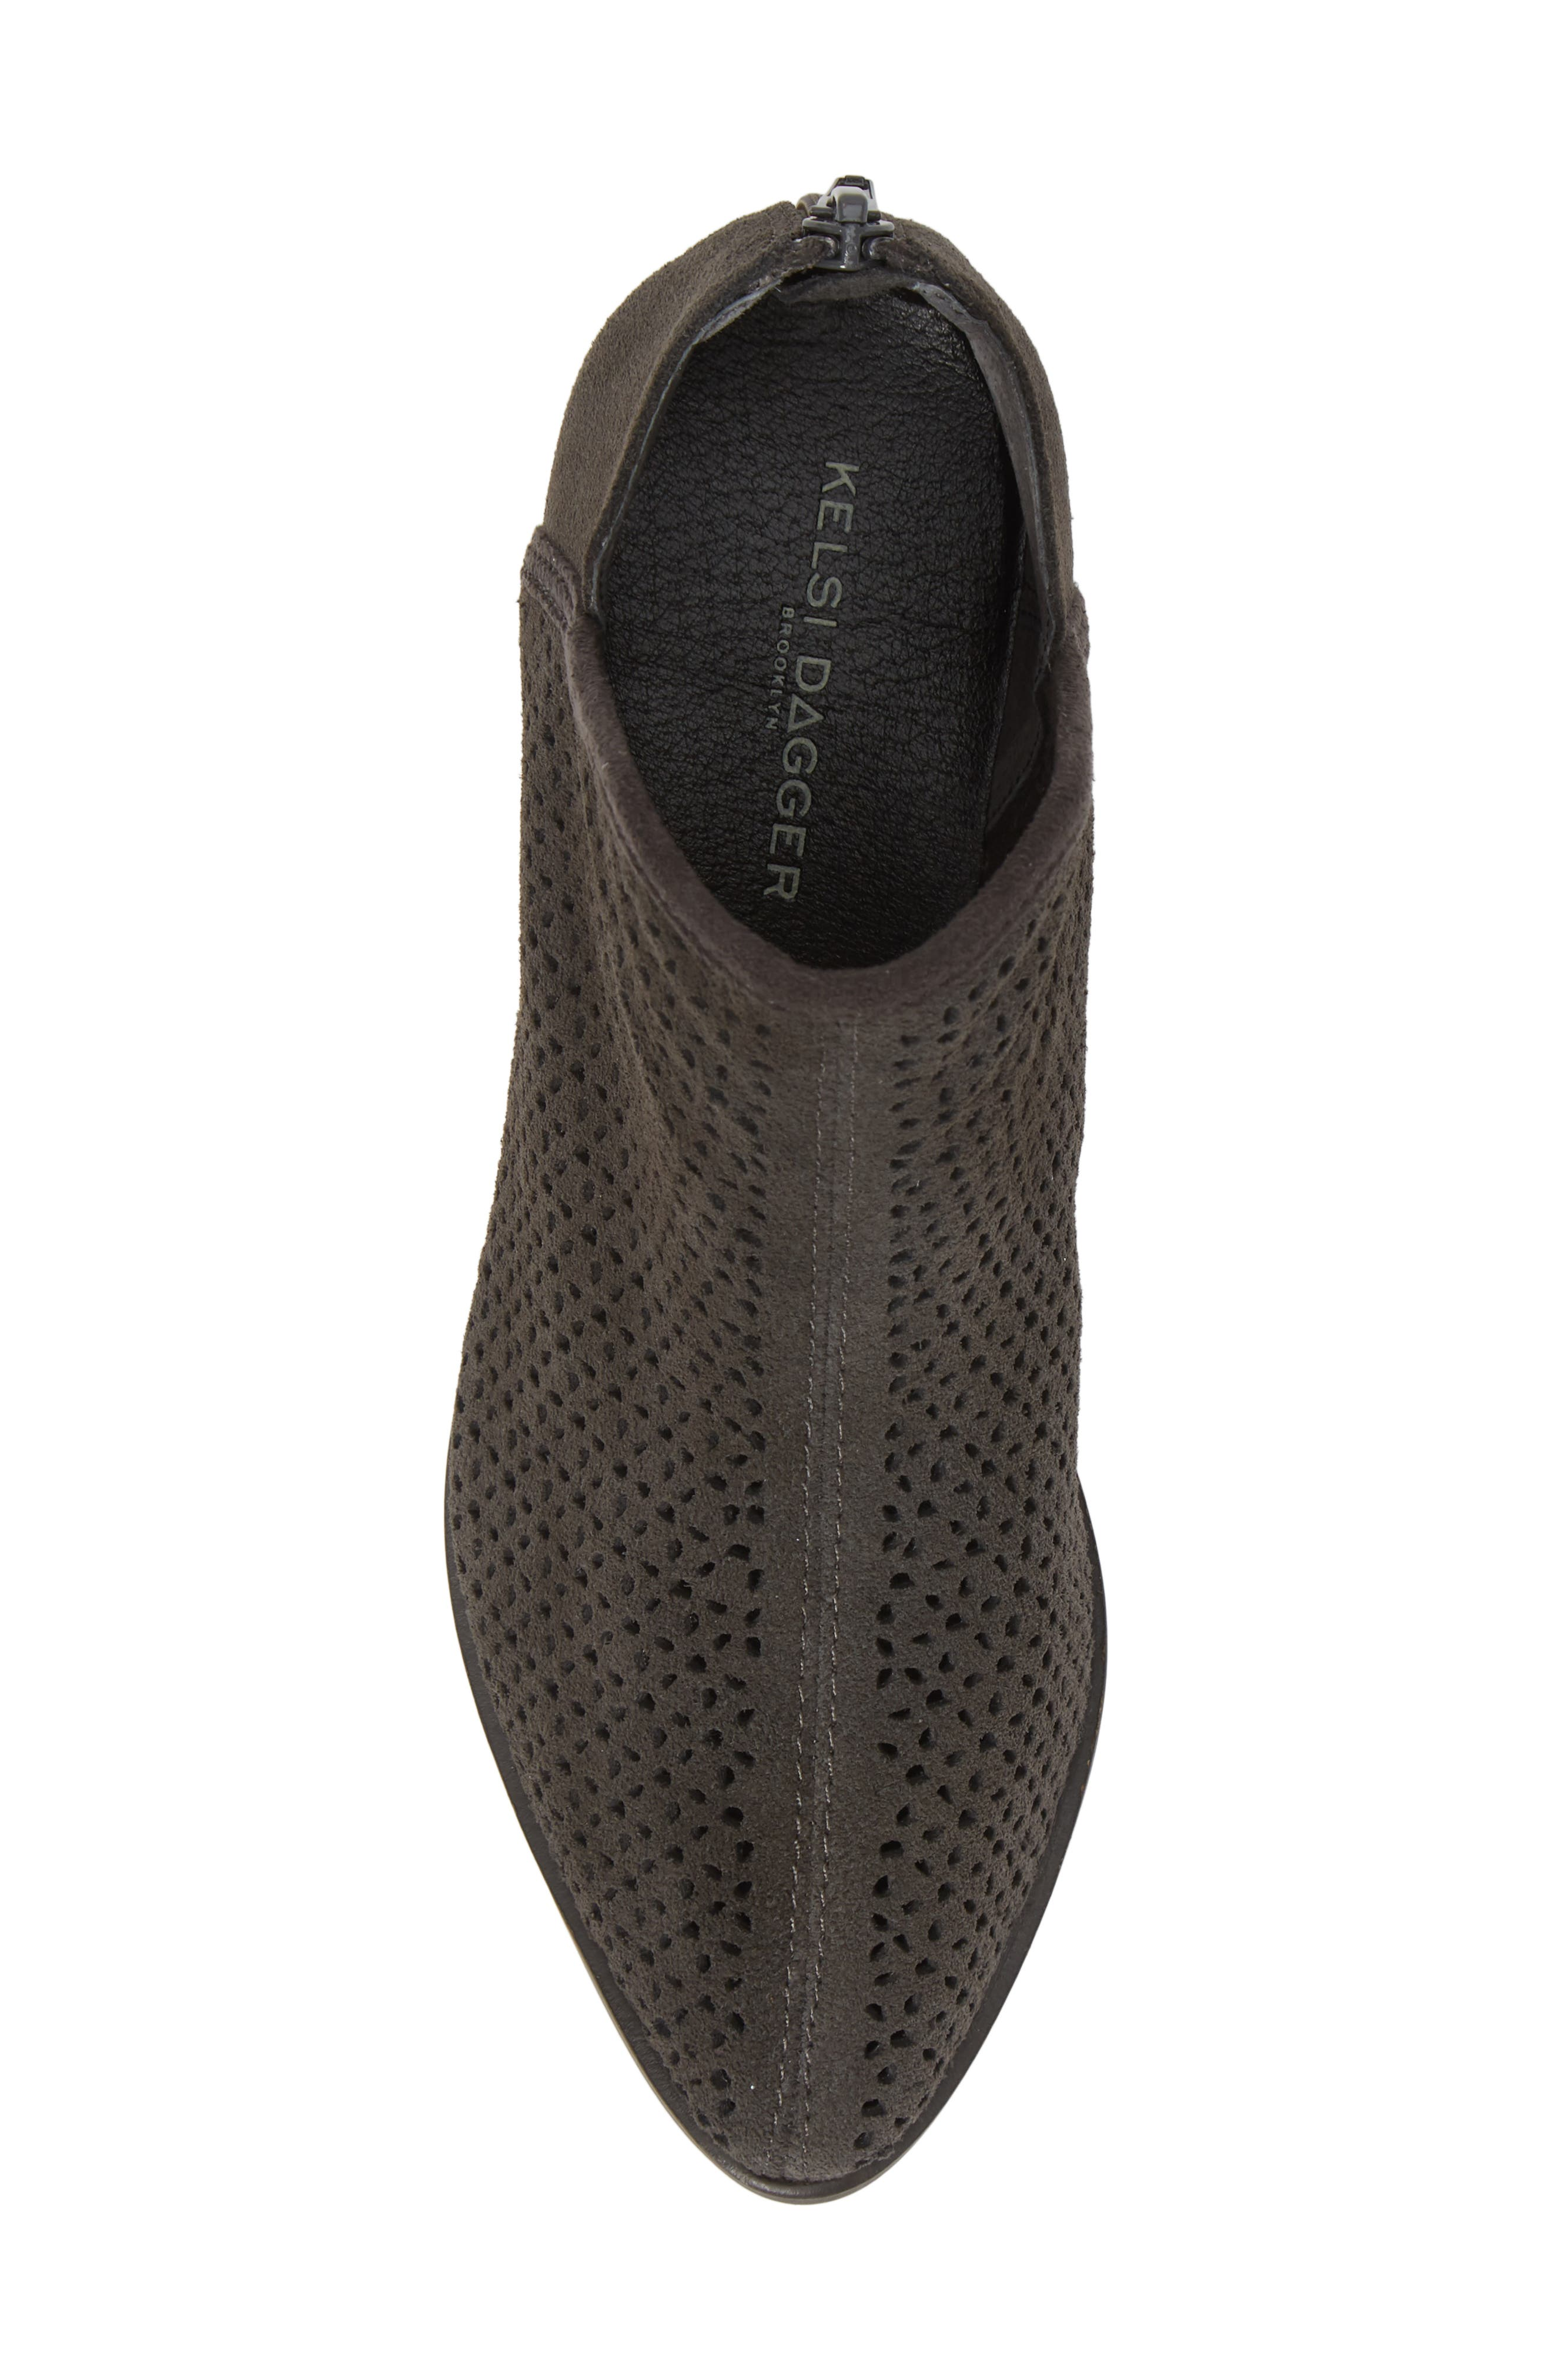 KELSI DAGGER BROOKLYN, Alley Perforated Bootie, Alternate thumbnail 5, color, CHARCOAL